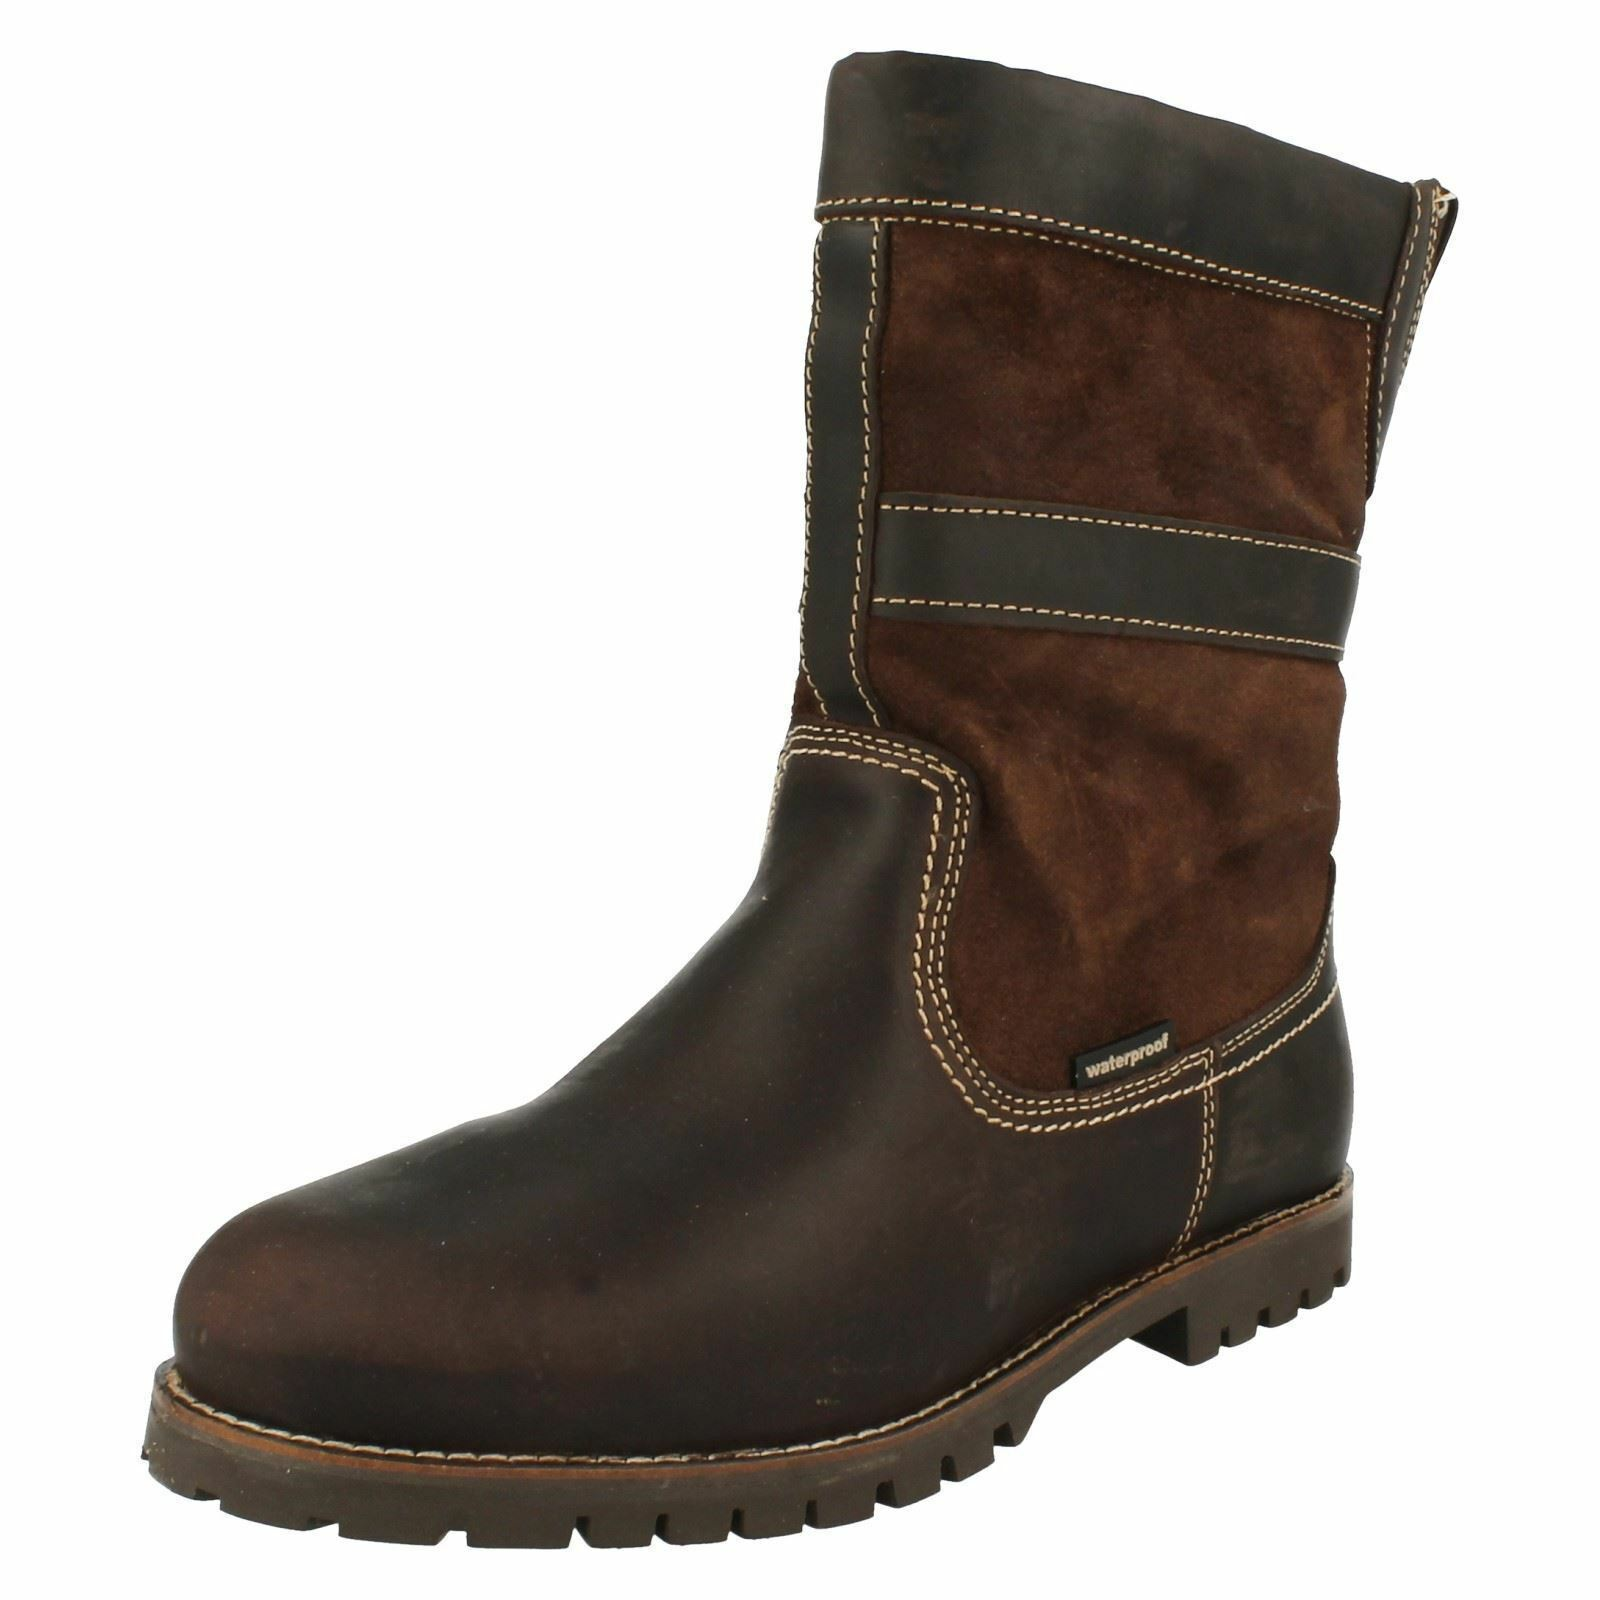 Mens Human Nature brown leather / suede pull on boot Patric